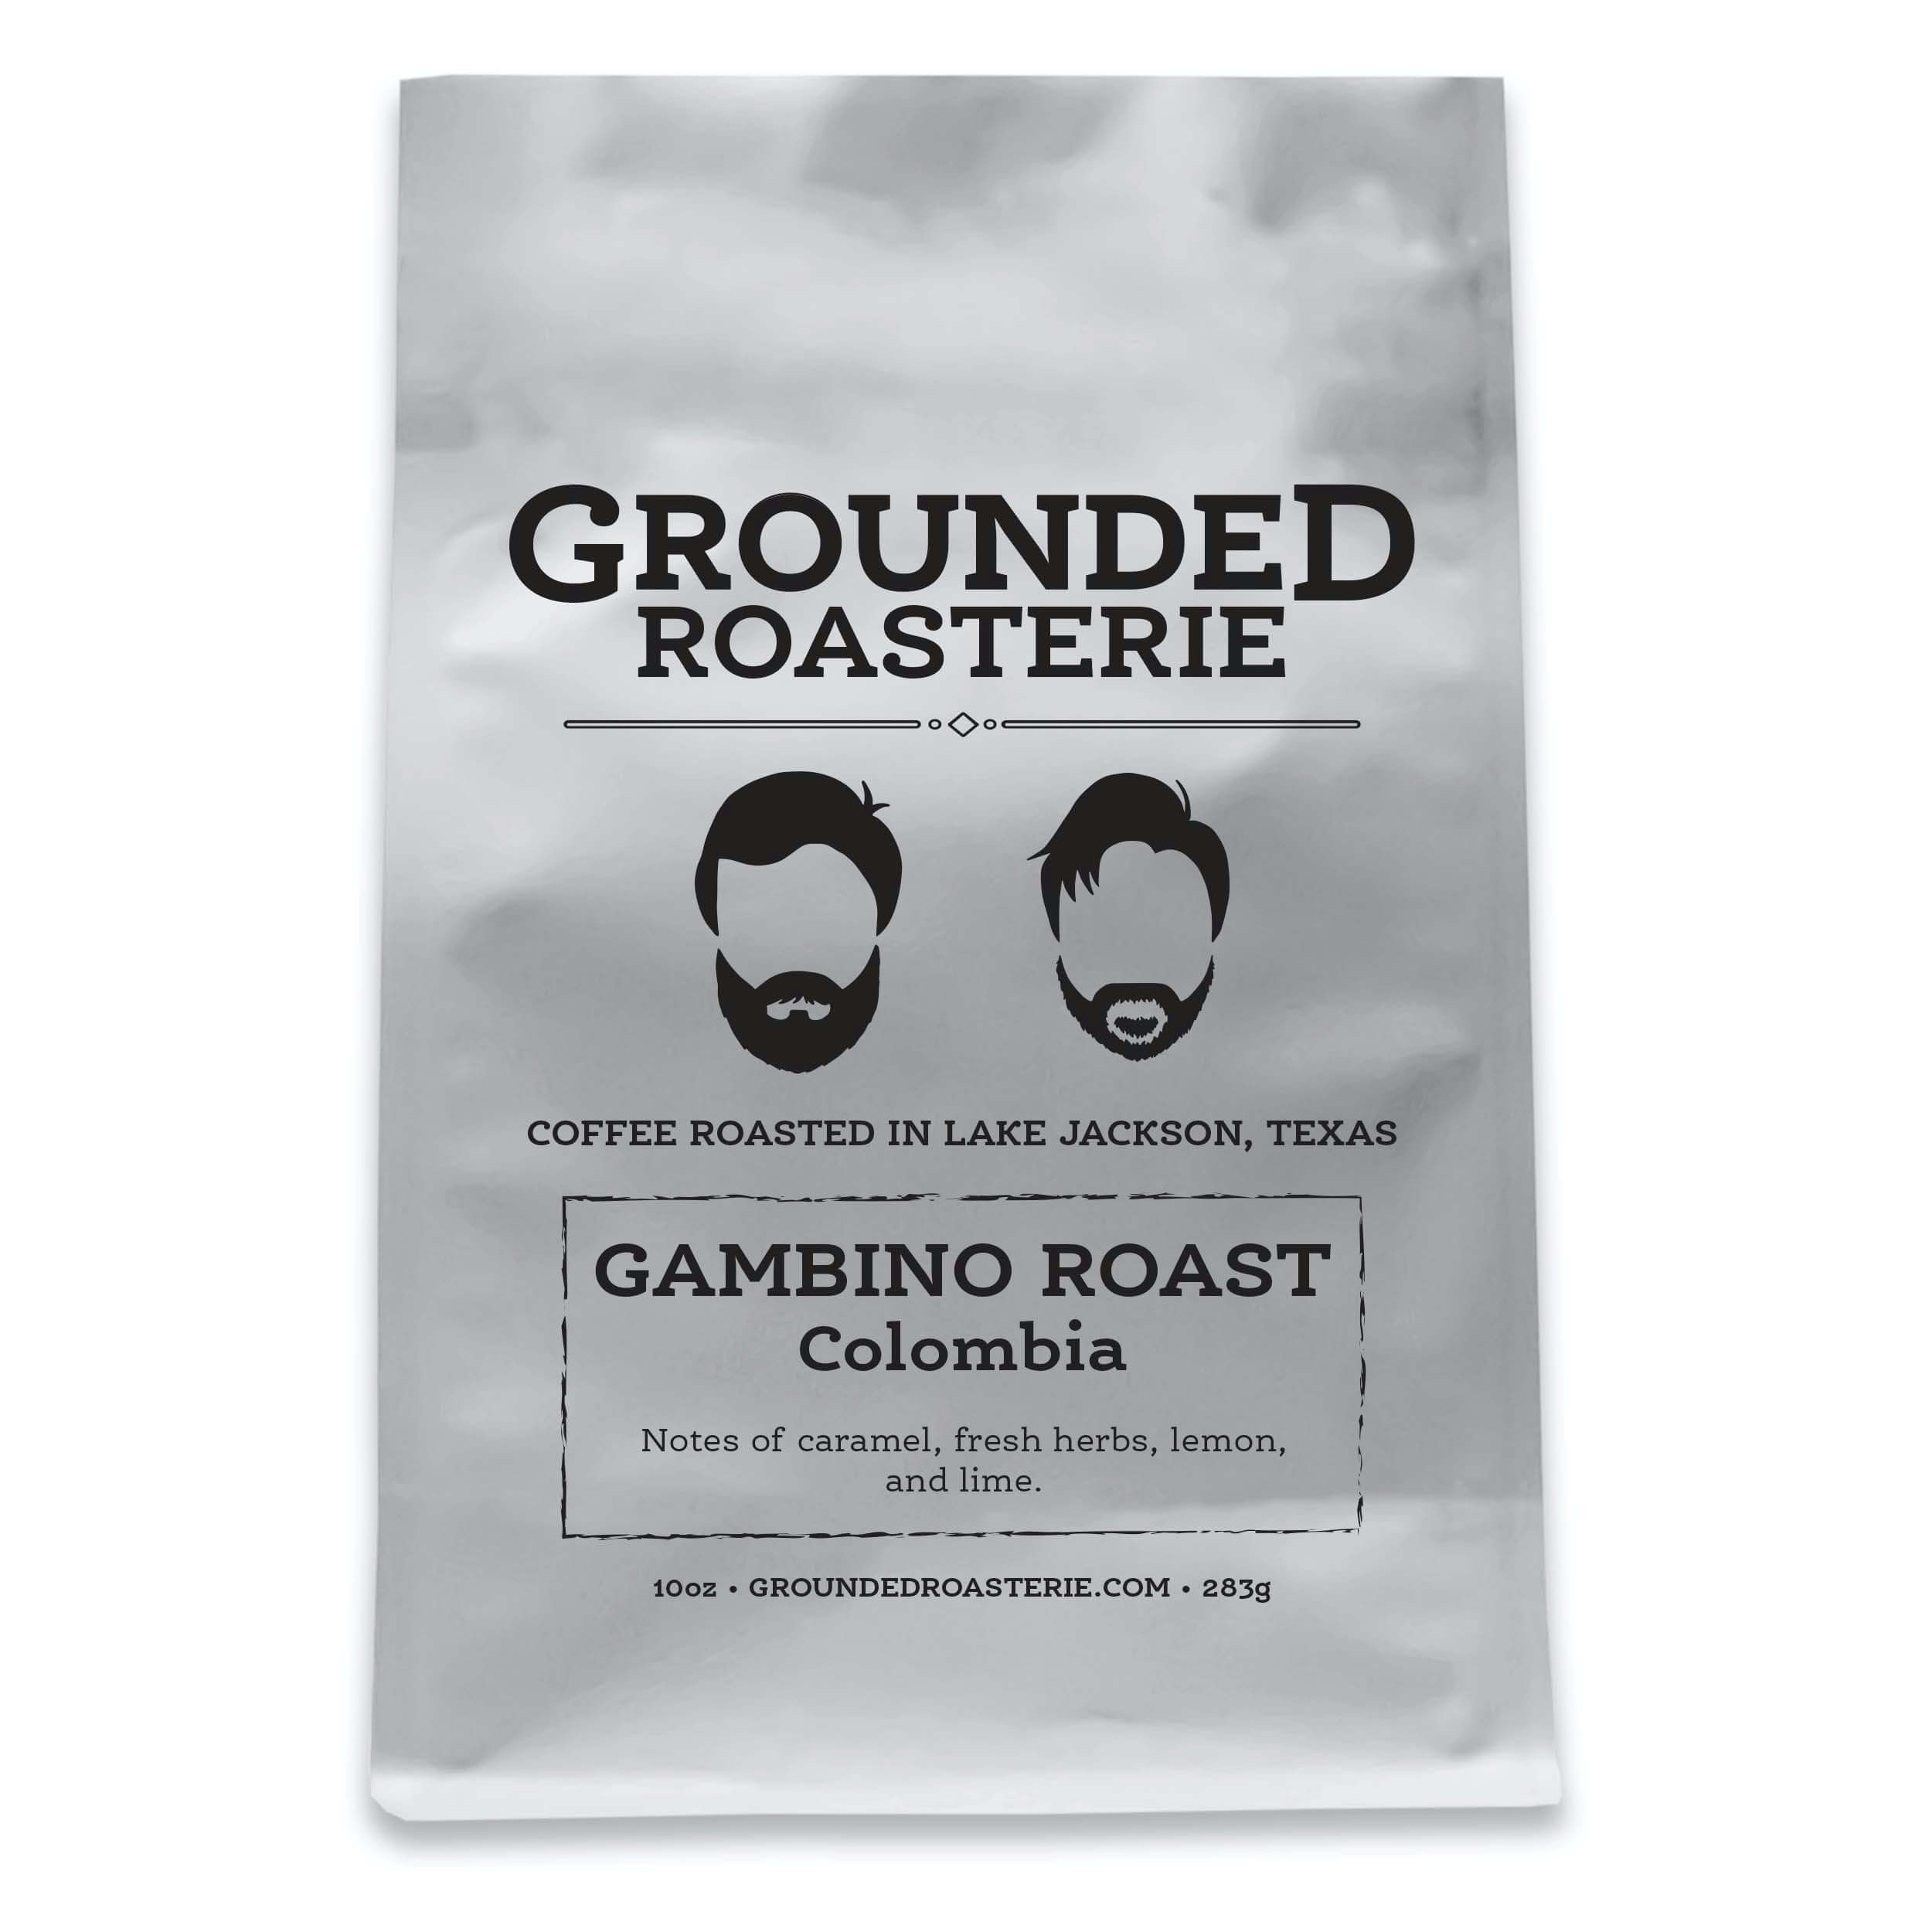 Colombia Gambino Roast from Grounded Roasterie